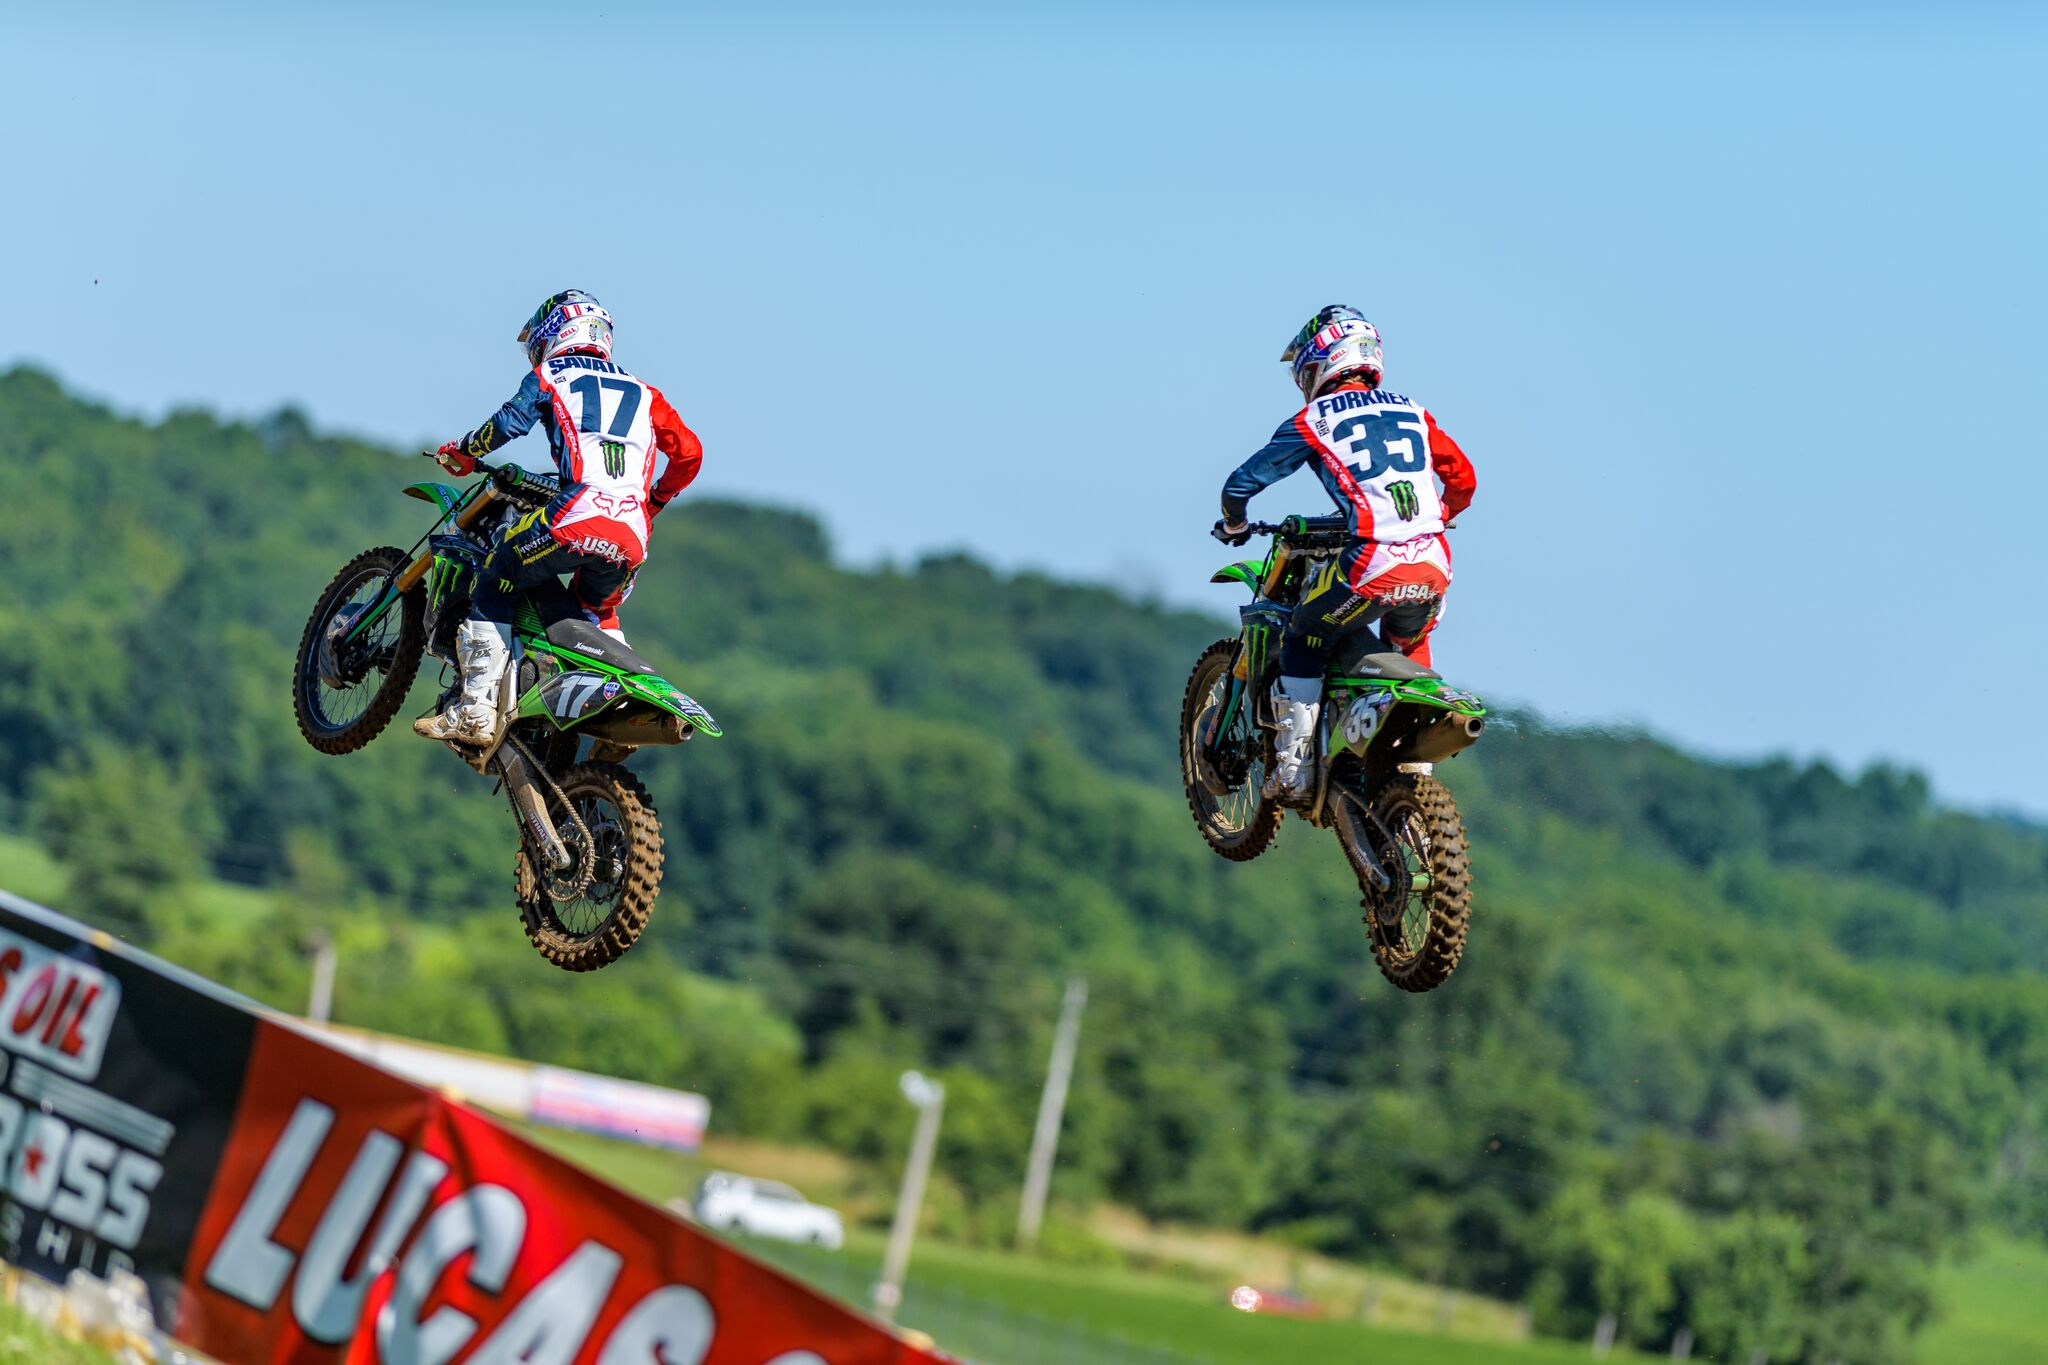 Austin Forkner and Joey Savatgy